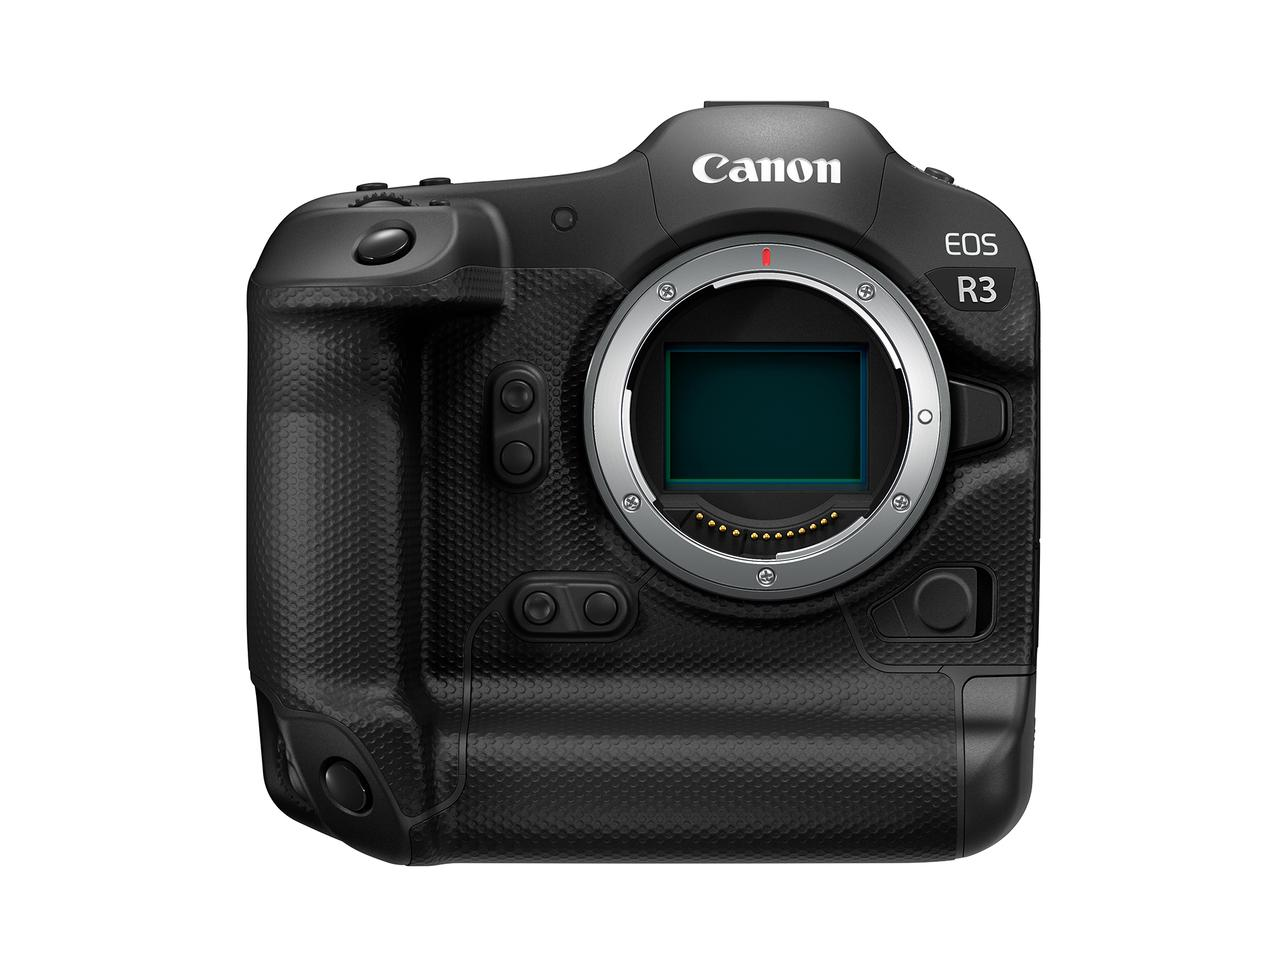 The EOS R3 will be built around a brand-new back-illuminated full-frame stacked-CMOS sensor developed and manufactured by Canon